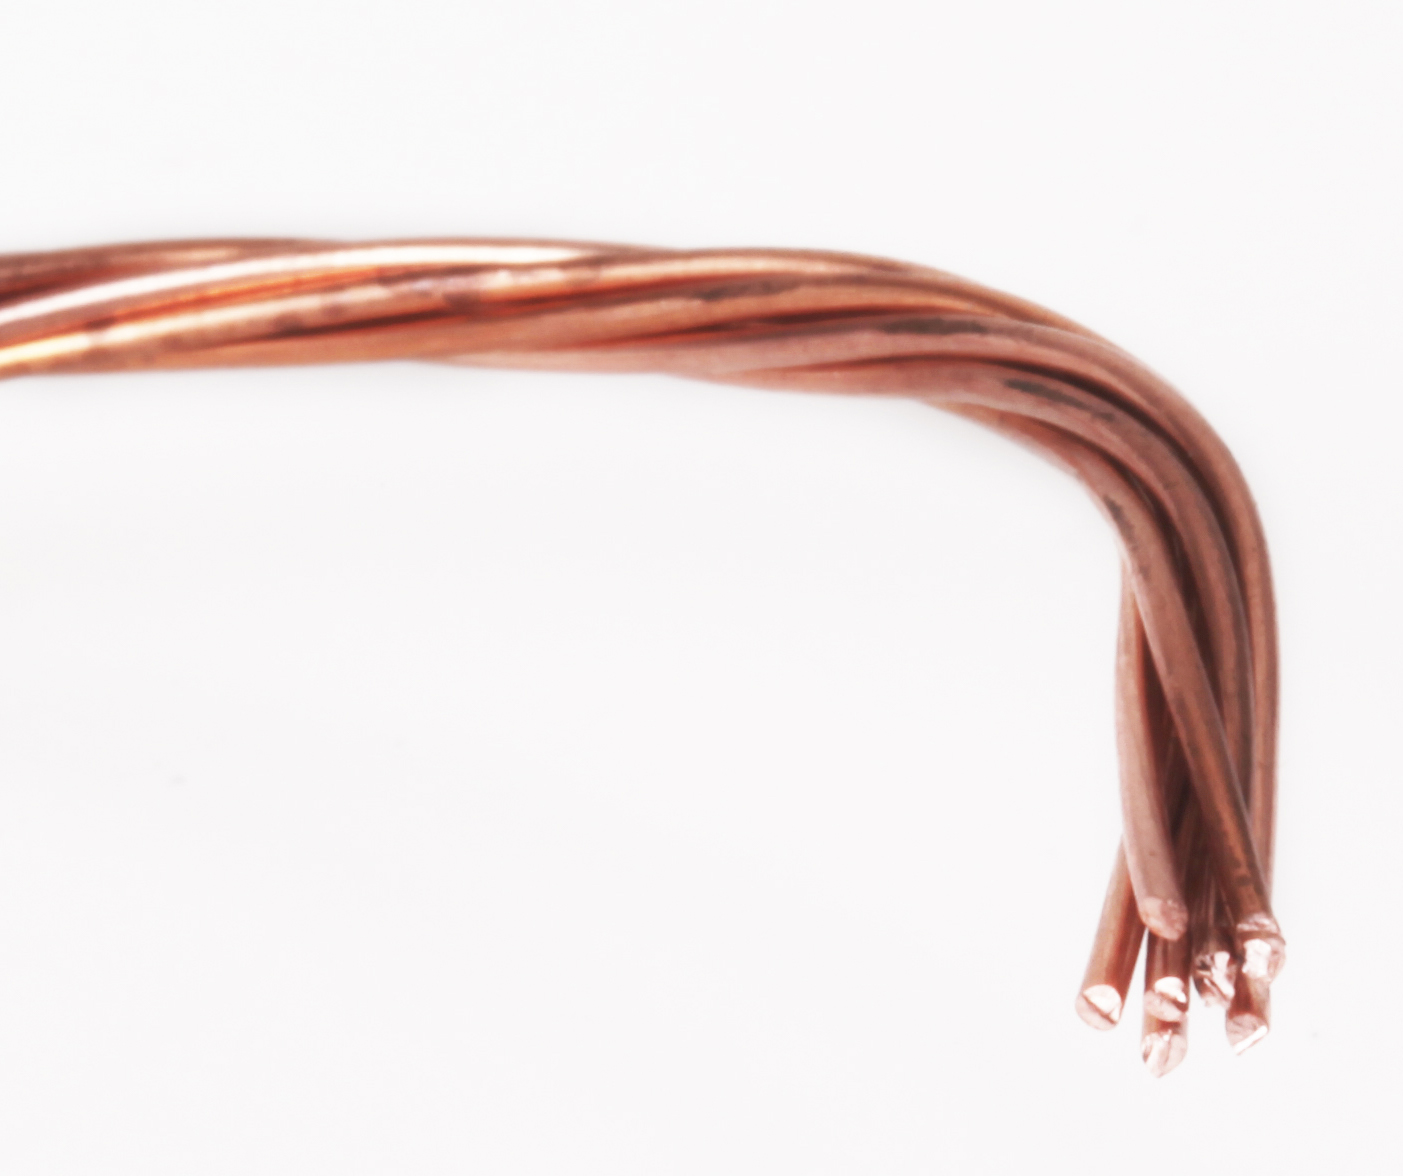 Stranded Bare Copper Wires